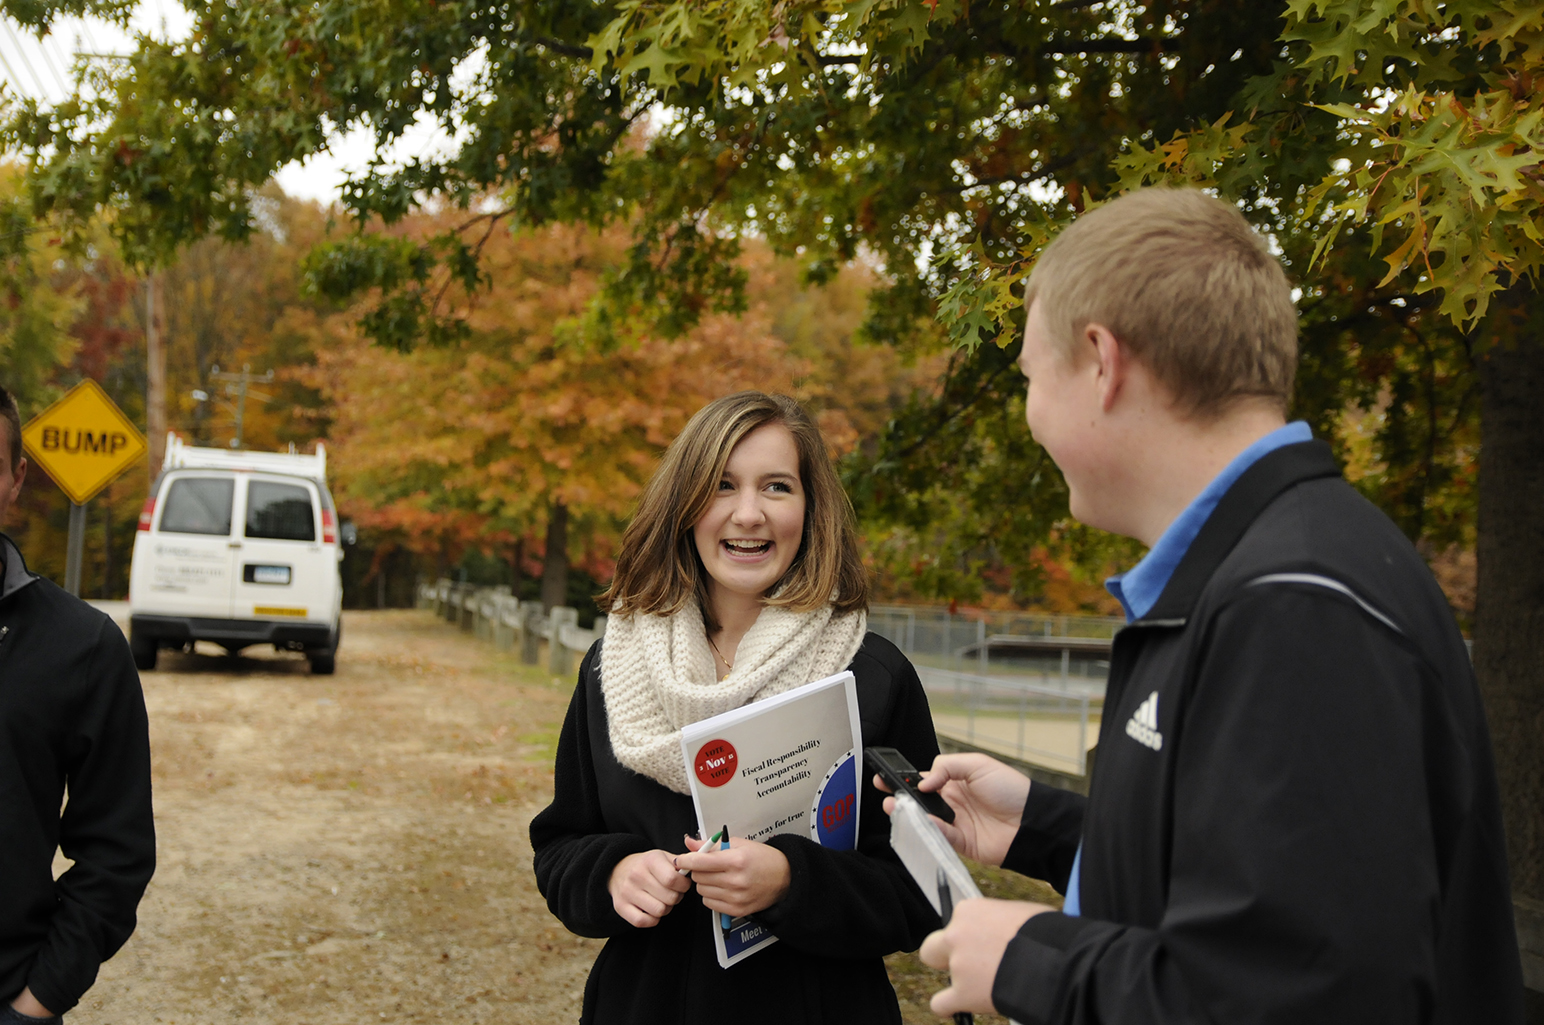 The Republicans were joined by members of the UConn College Republicans in their door-knocking campaign. Gianna Bodnar, vice president of the UConn College Republicans, talks with Daily Campus reporter Kyle Constable on the campaign trail. (Amar Batra/The Daily Campus)